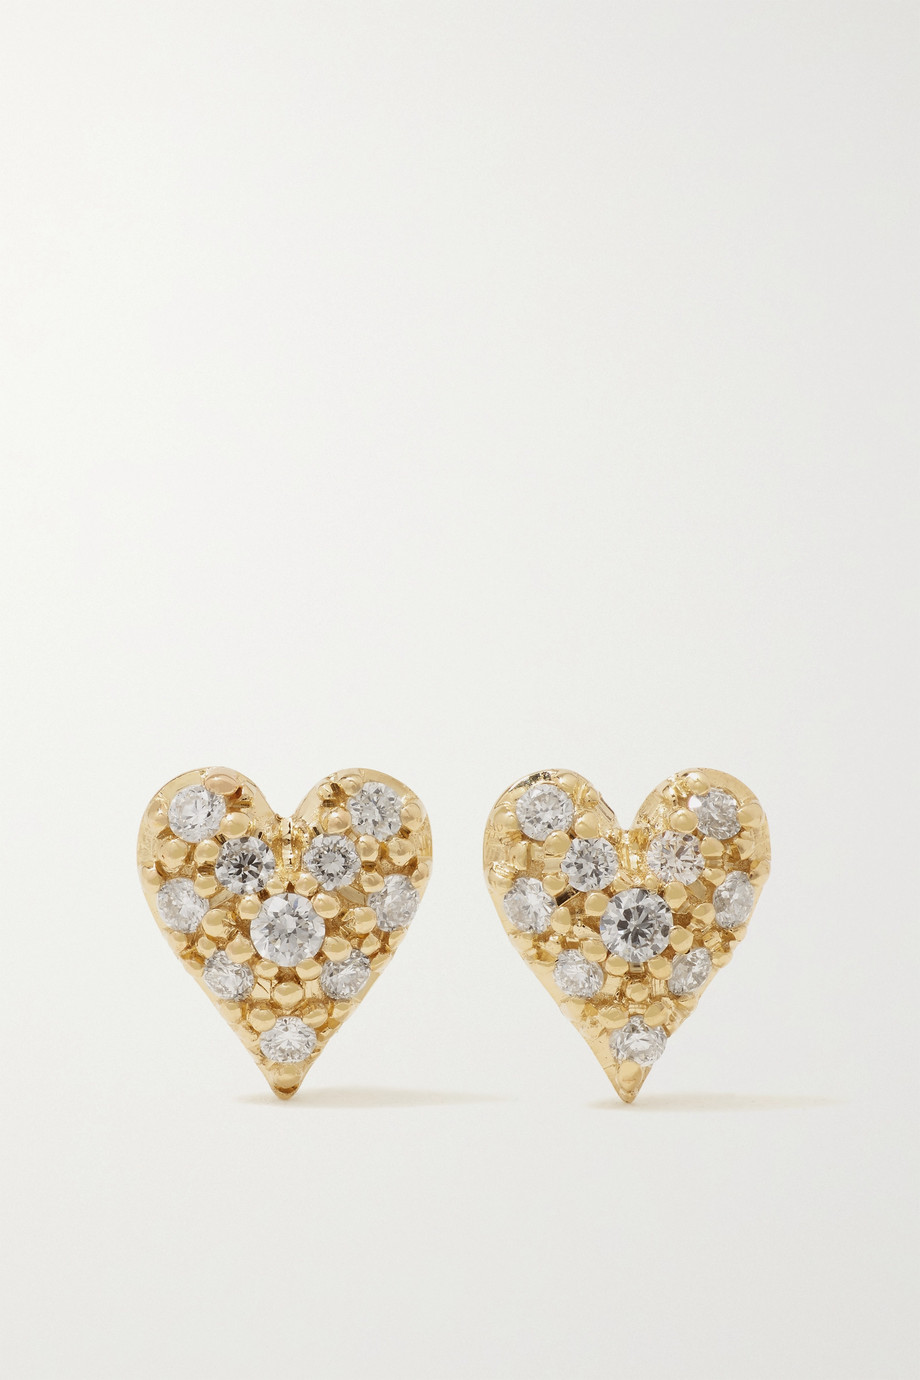 Mizuki 14-karat gold diamond earrings